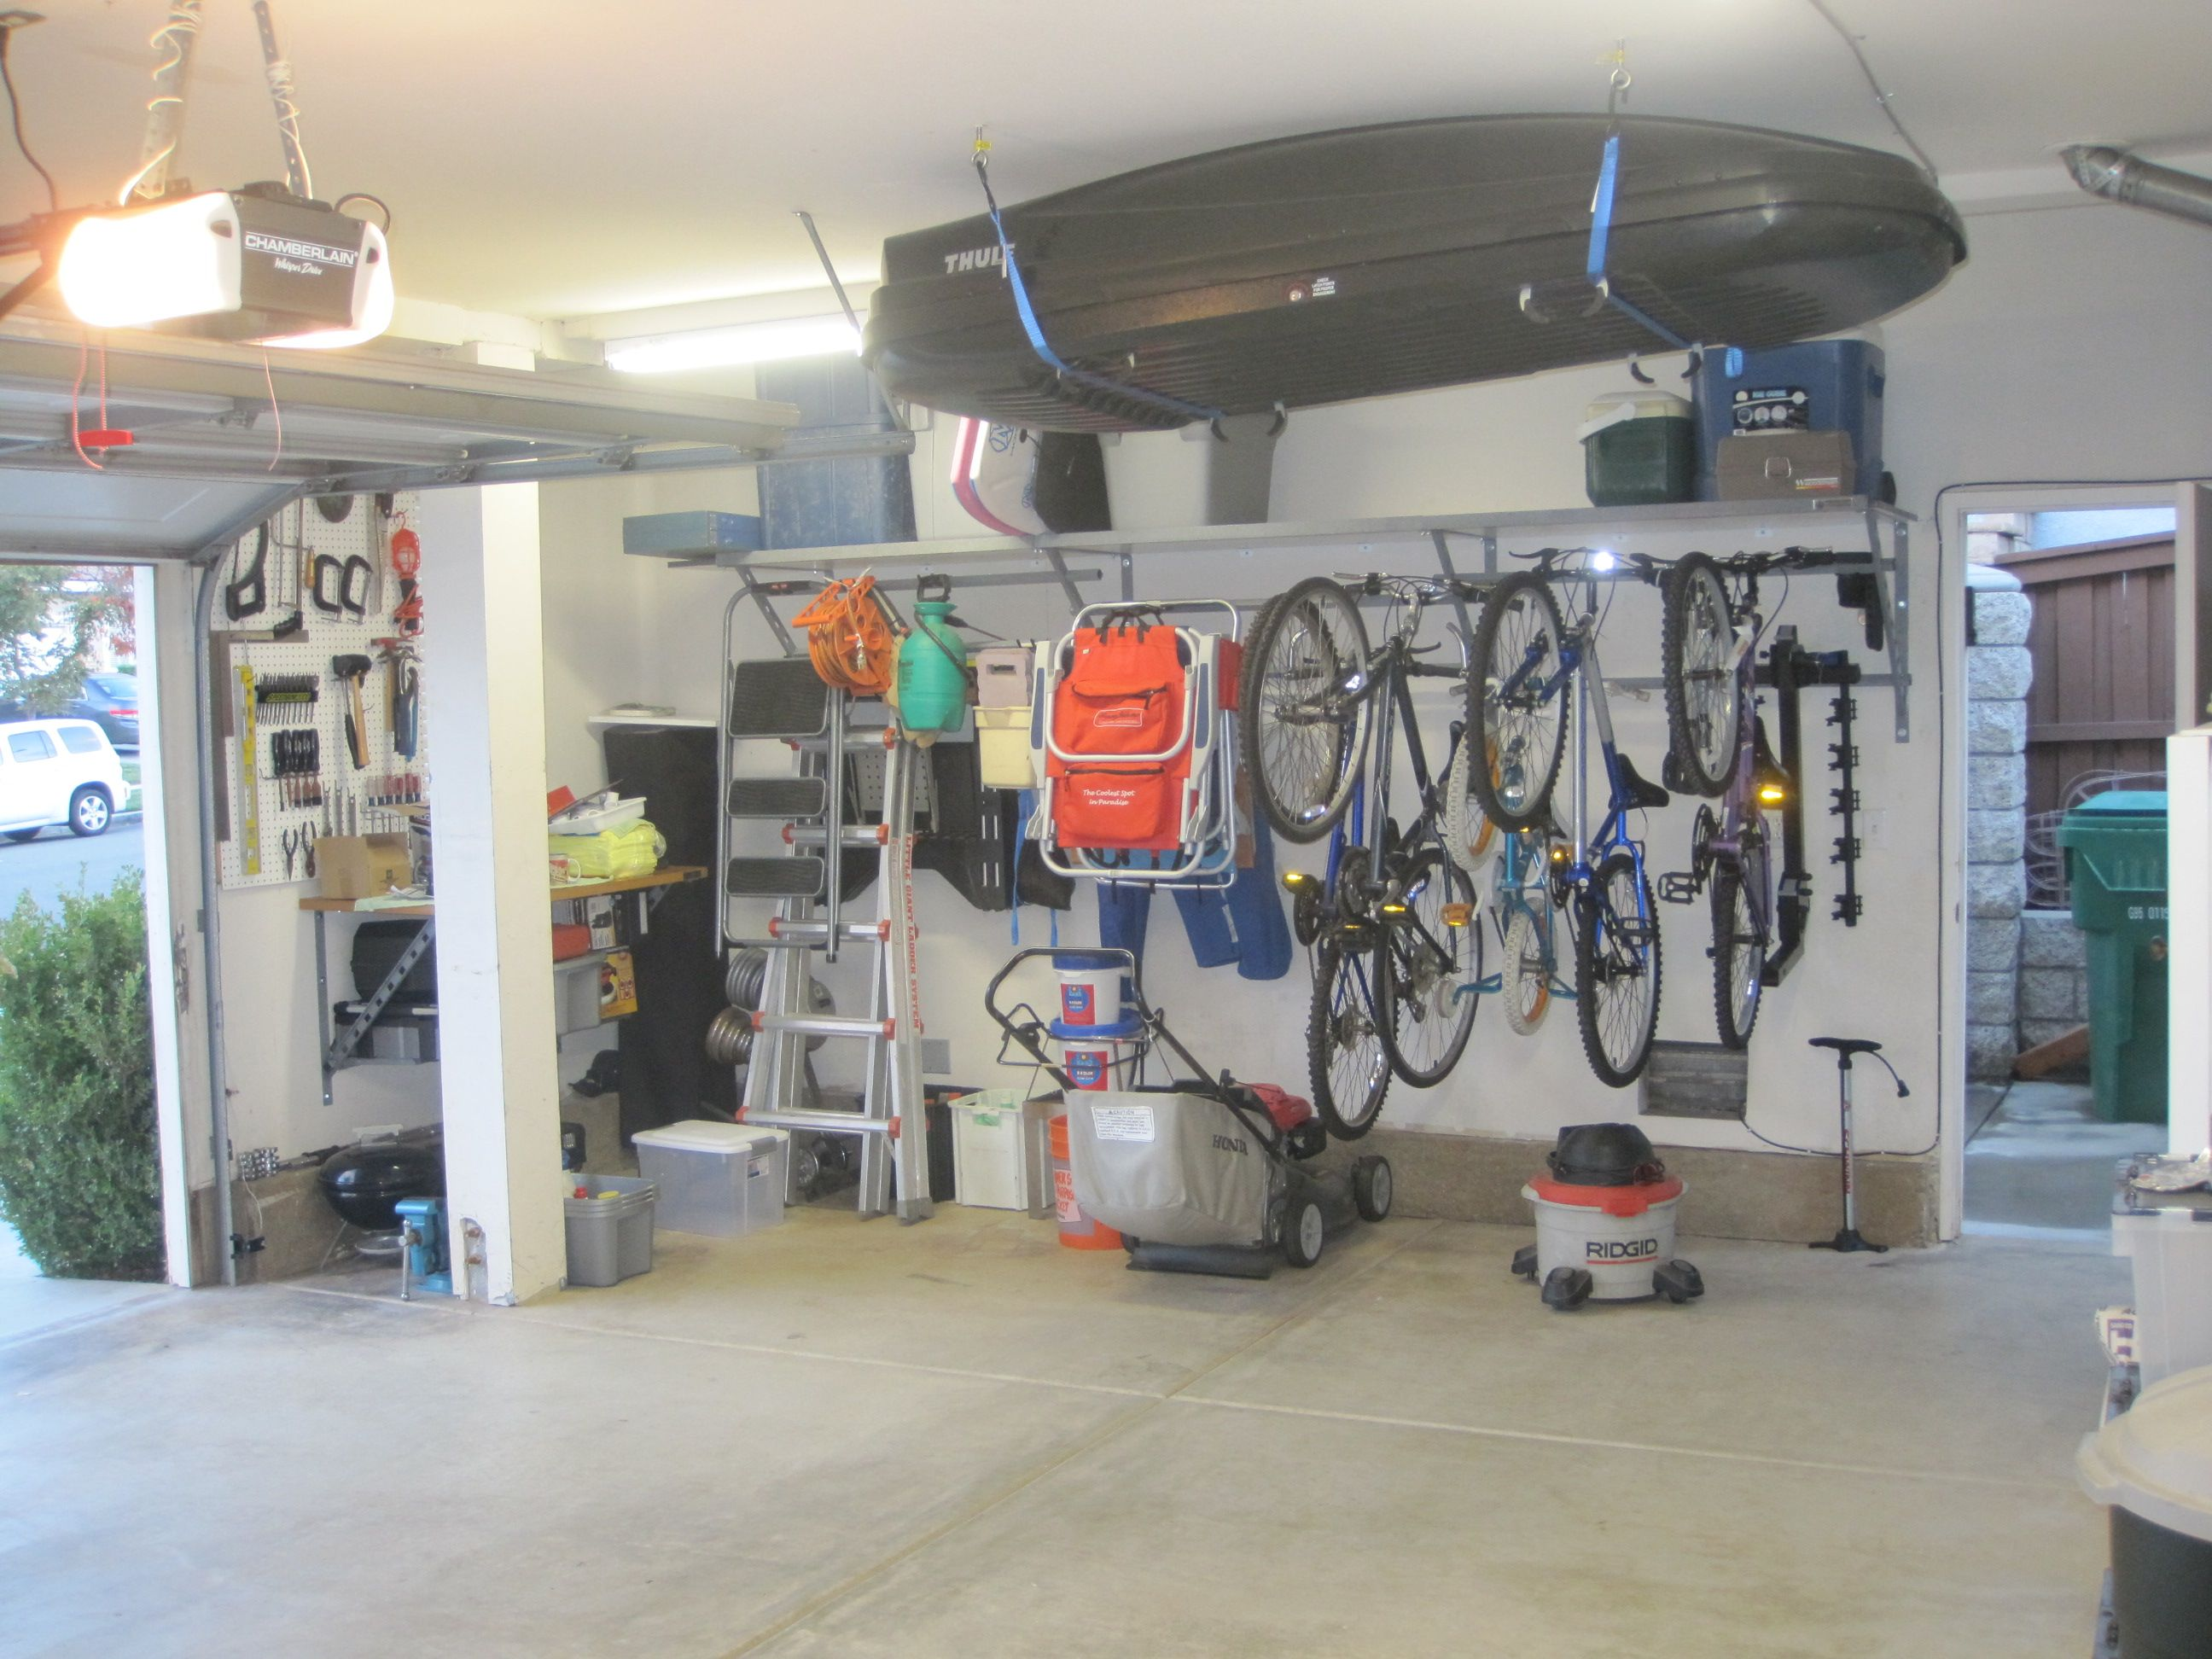 and design wheels floor modern ideas tips ceiling remodel with tiles steel rack mount pegboard after storage carpet hanger epoxy garage decoration organization wall large high cabinet bicycle